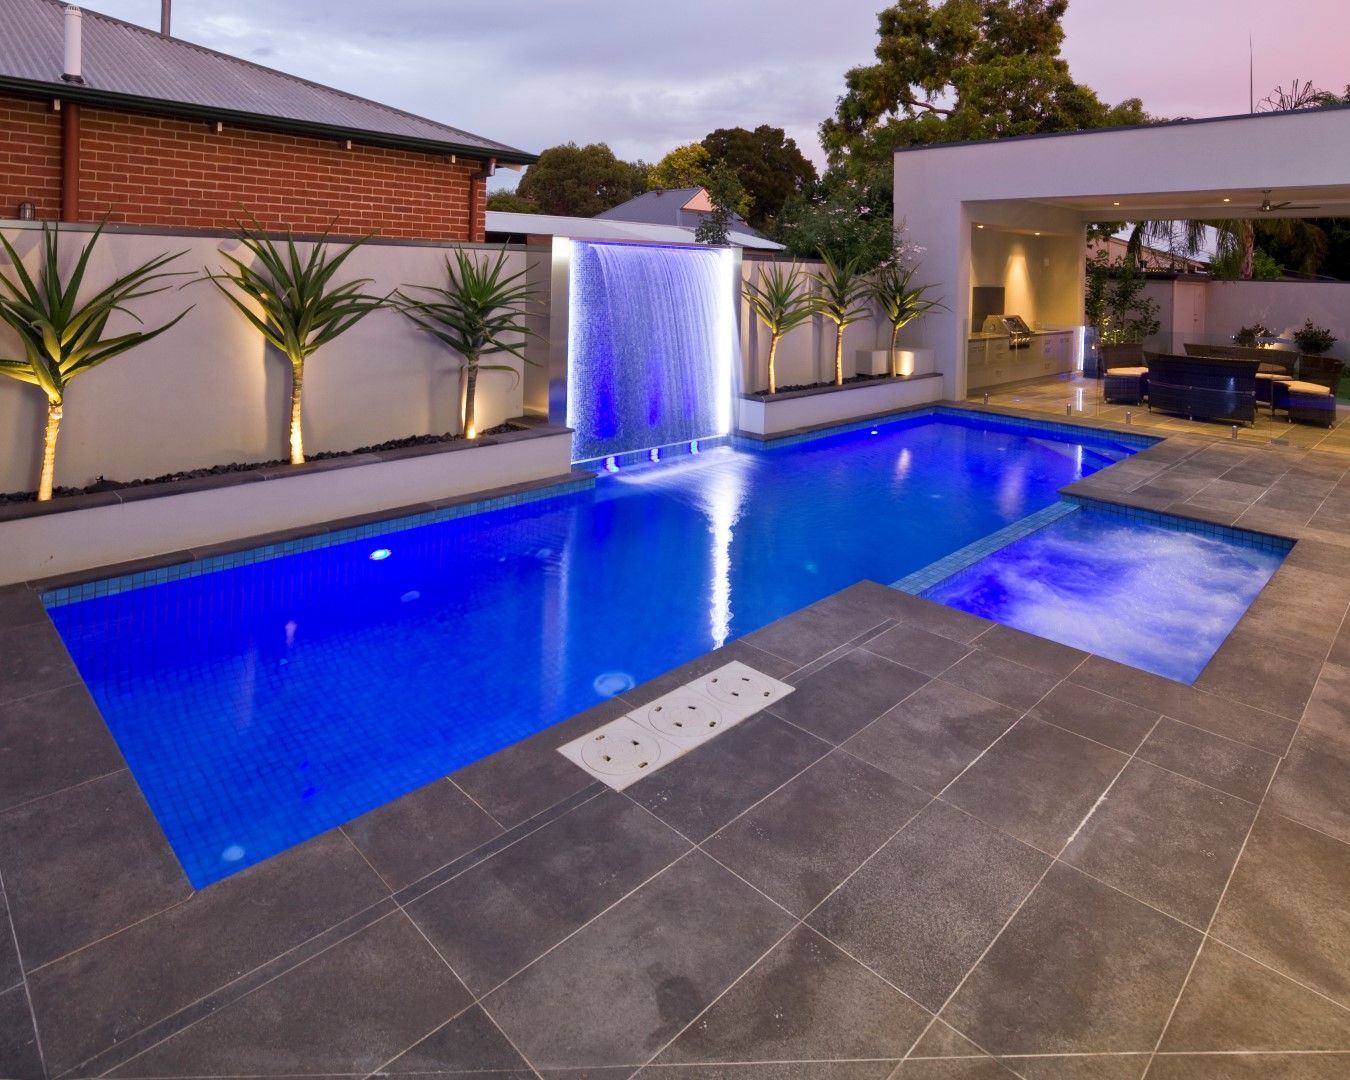 Exceptional #ConcretePool #SwimmingPool #FreedomPools